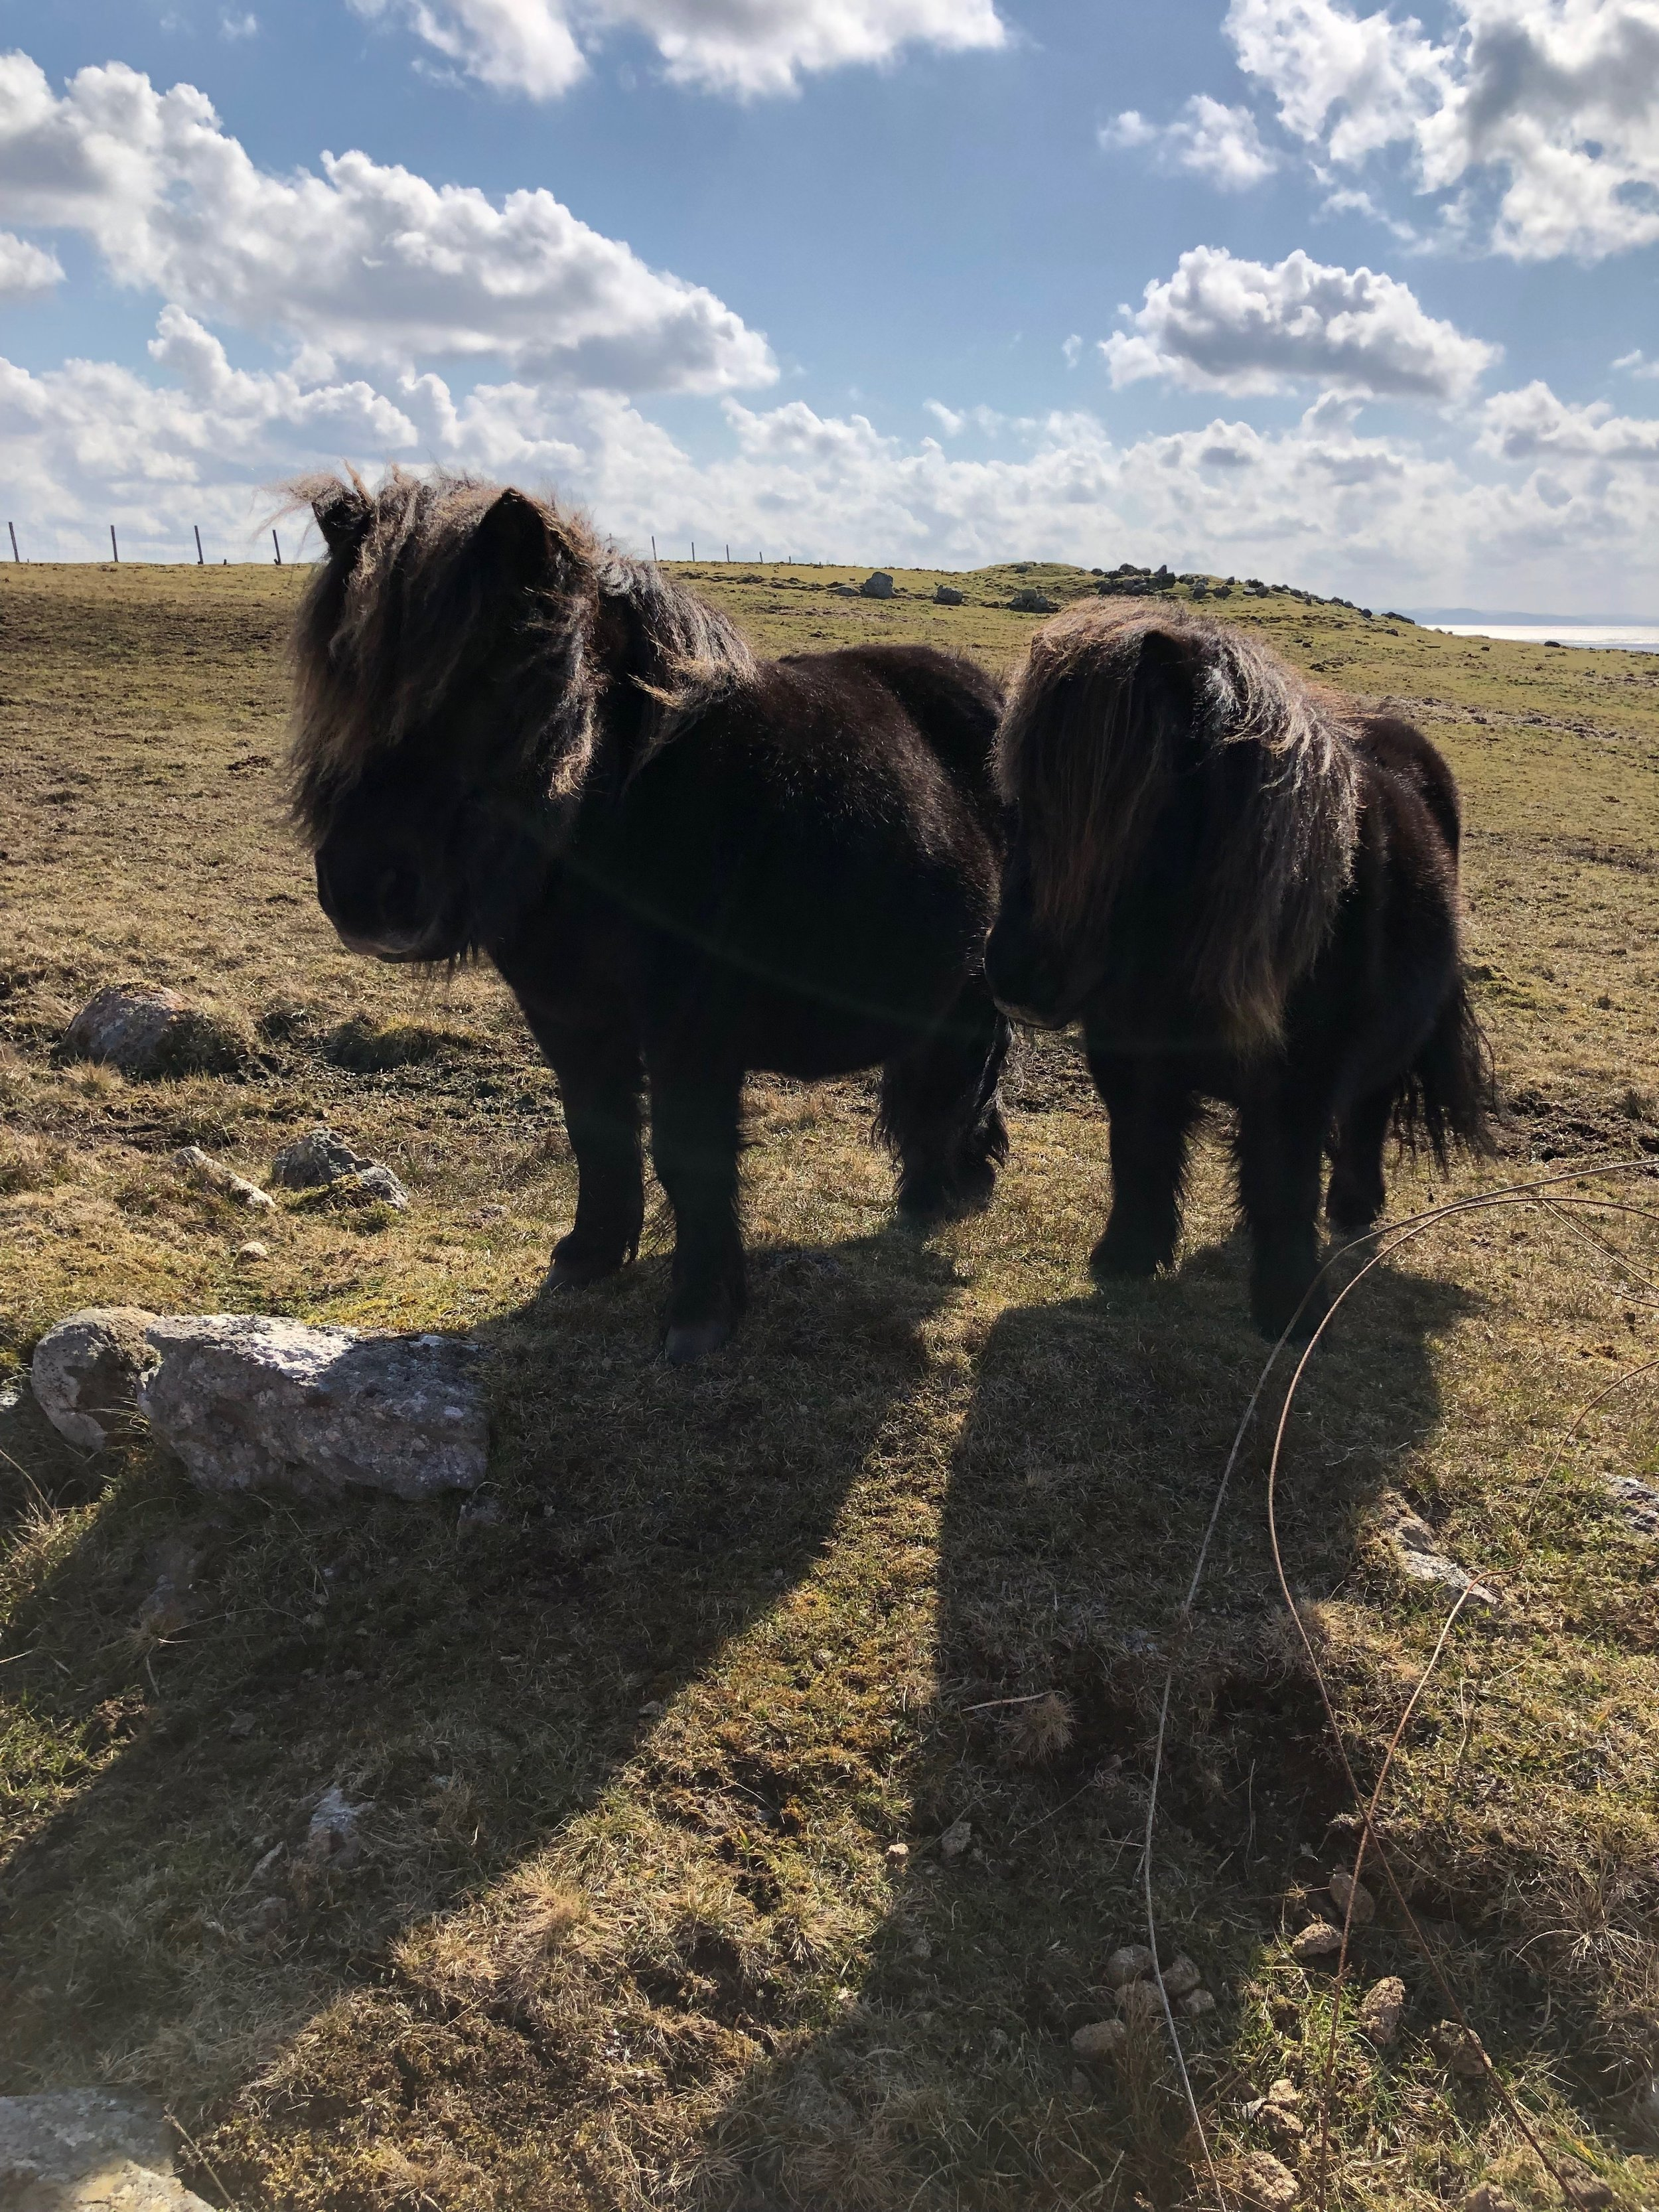 For at least 4000 years, in comparative isolation, these fascinating small ponies have roamed the exposed hills and moors of Shetland.